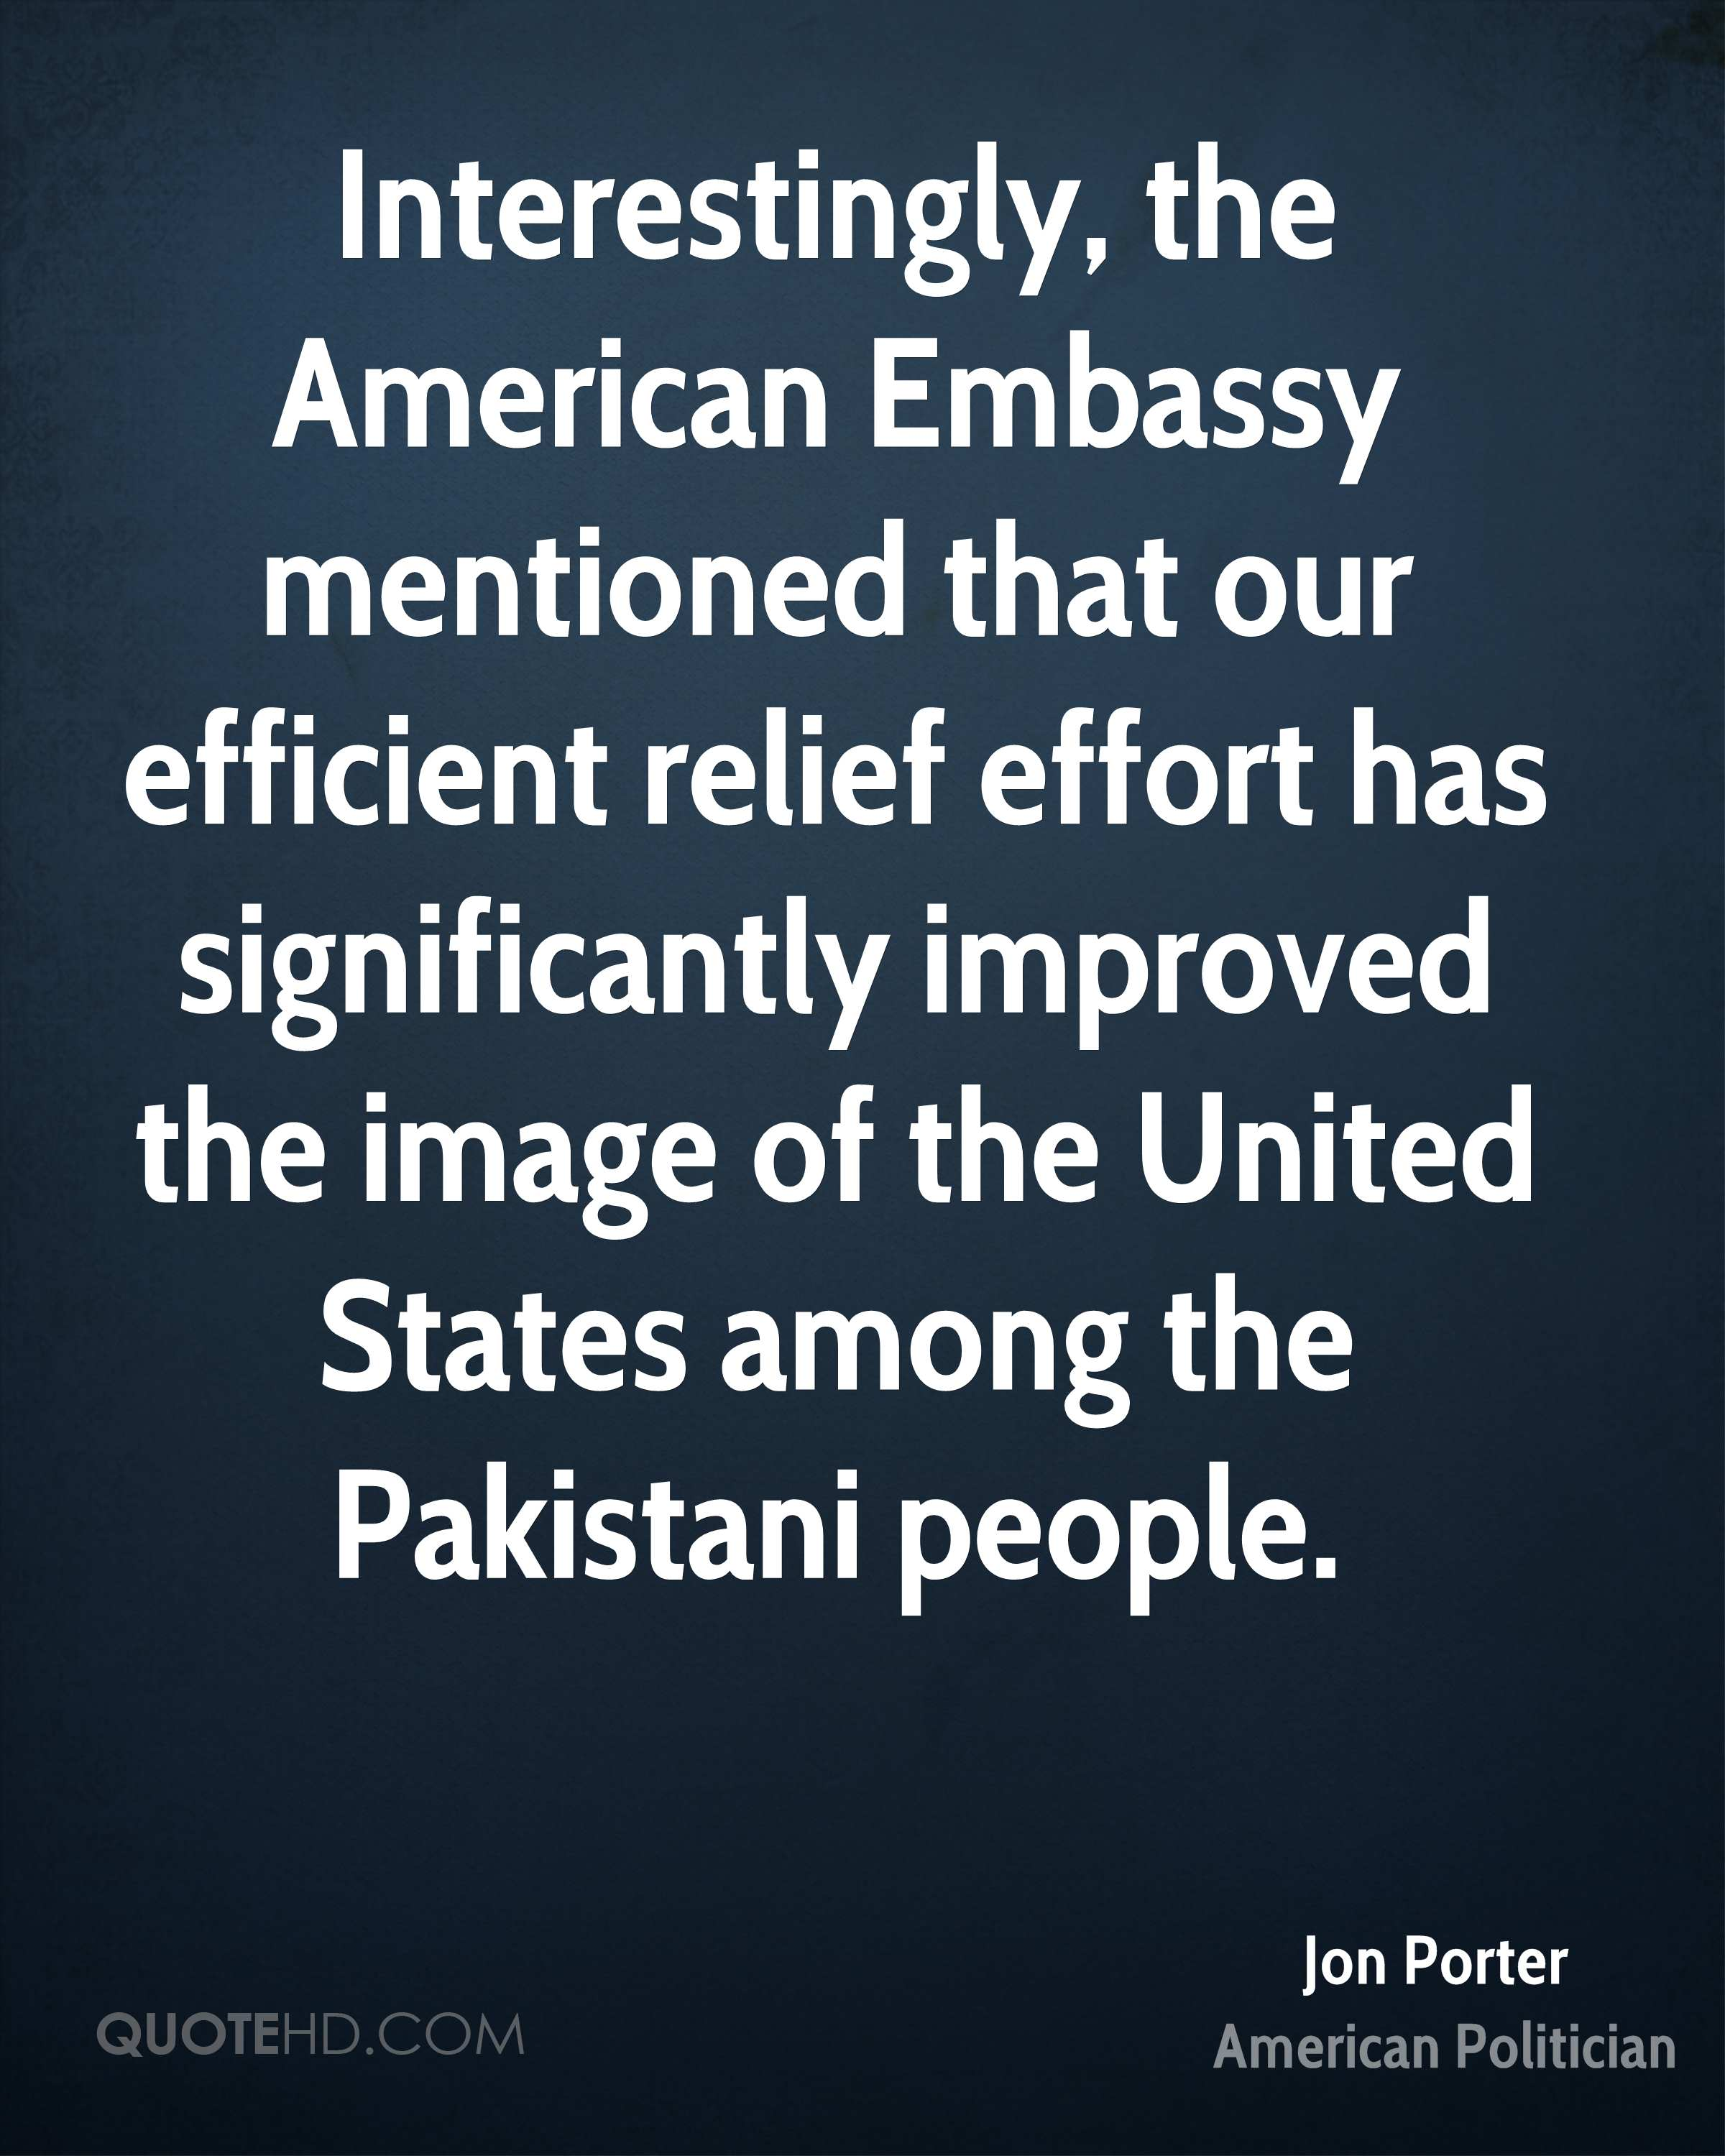 Interestingly, the American Embassy mentioned that our efficient relief effort has significantly improved the image of the United States among the Pakistani people.